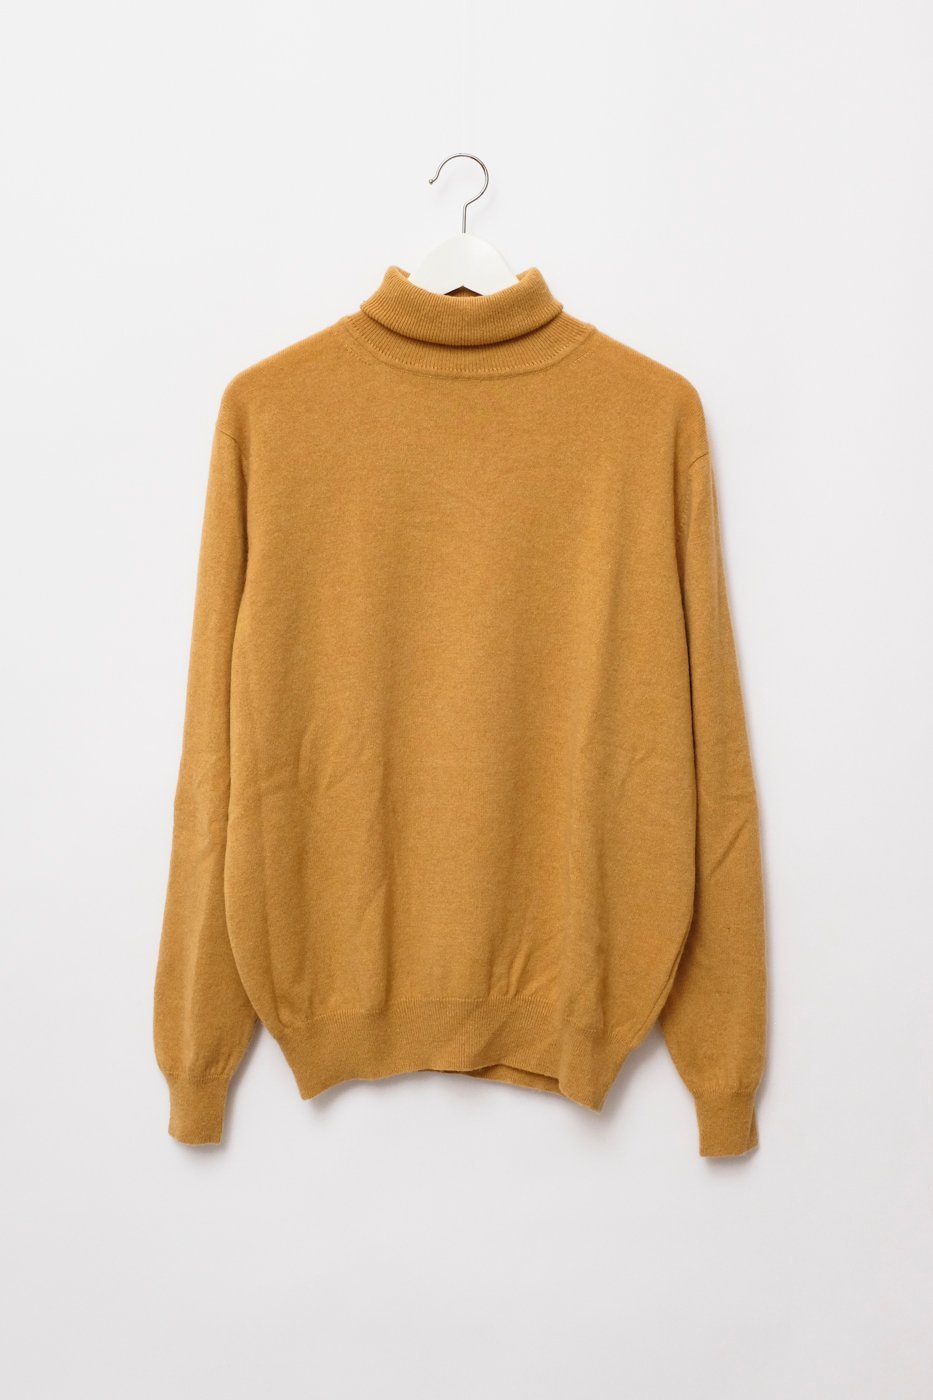 0298_CASHMERE MUSTARD YELLOW TURTLE KNIT